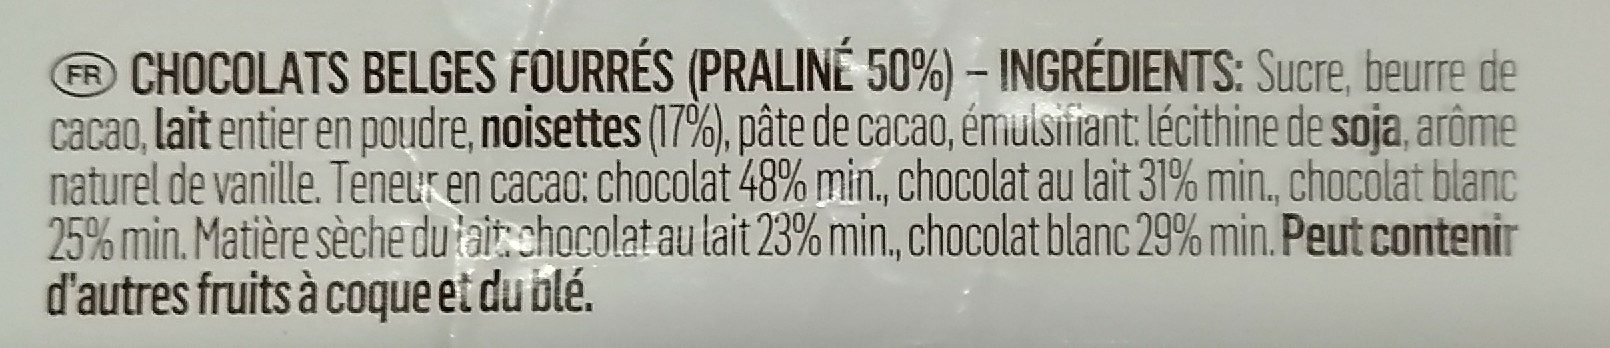 Artisanal Belgian Chocolates - Ingredients